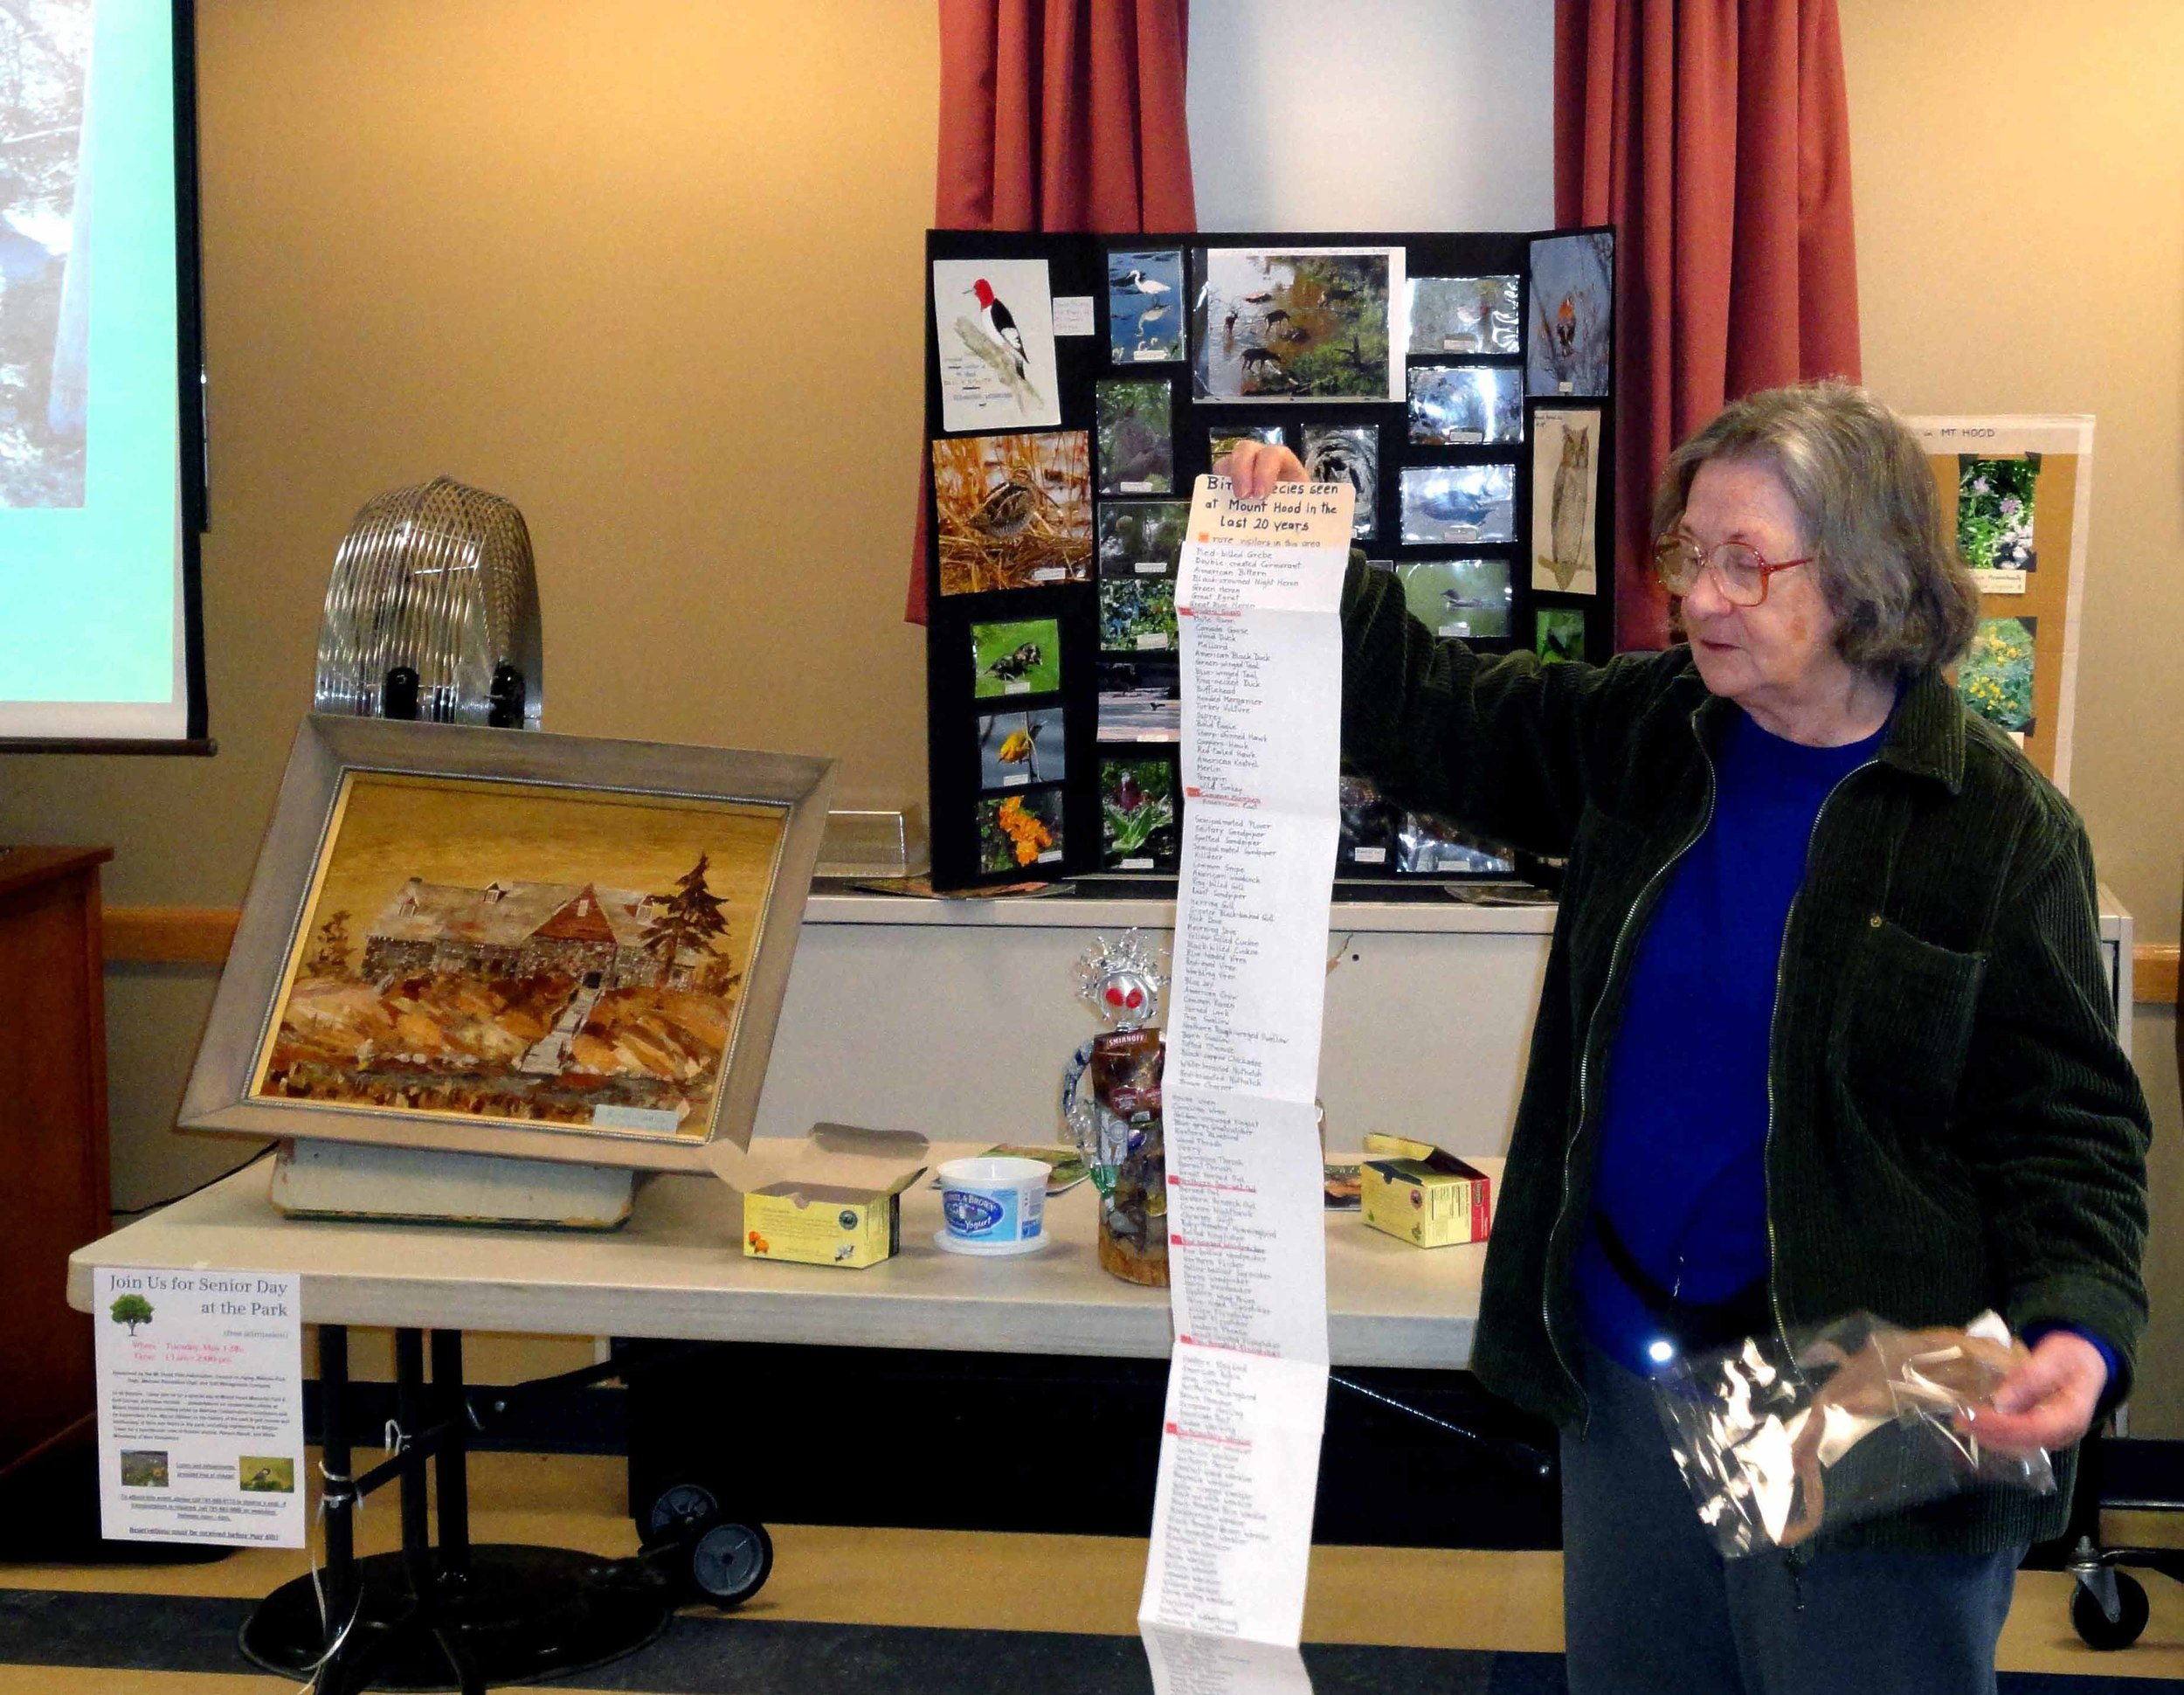 Enge Jewell displaying a list of over 150species of birds seen at Mount Hood Park in a 20 year period. She also displayed pictures of many birds seen at Mount Hood including artwork she created using materials found at the park. The framed picture shown above she made by assemblingdifferent pieces of birch bark found on the ground at the park.